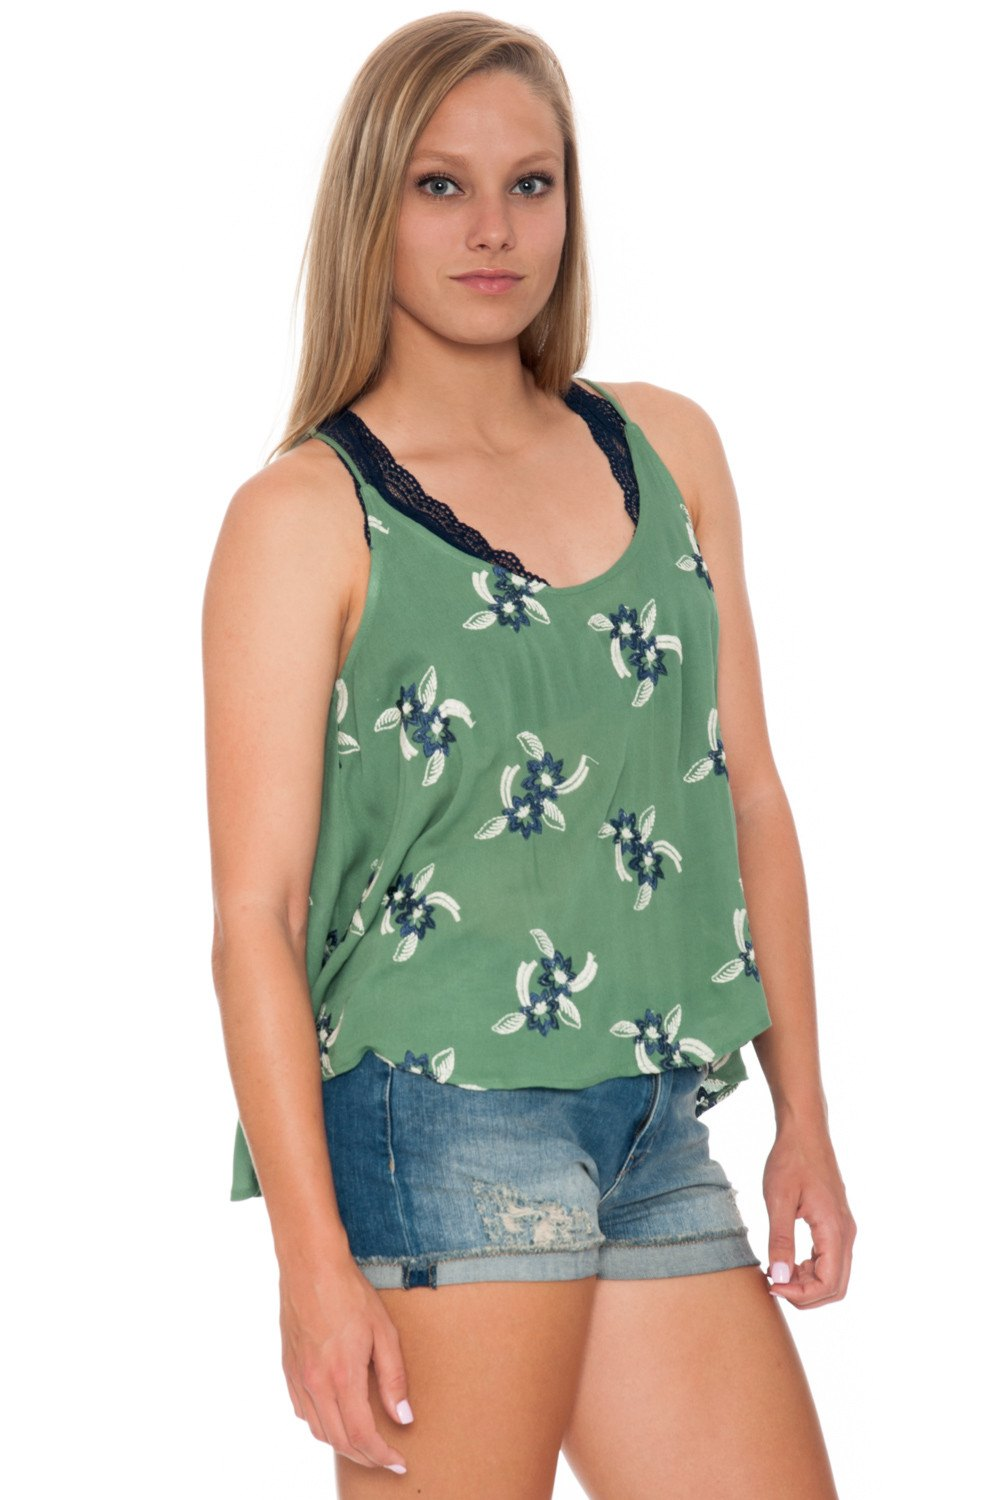 Top - Shear Green with Open Back - 2